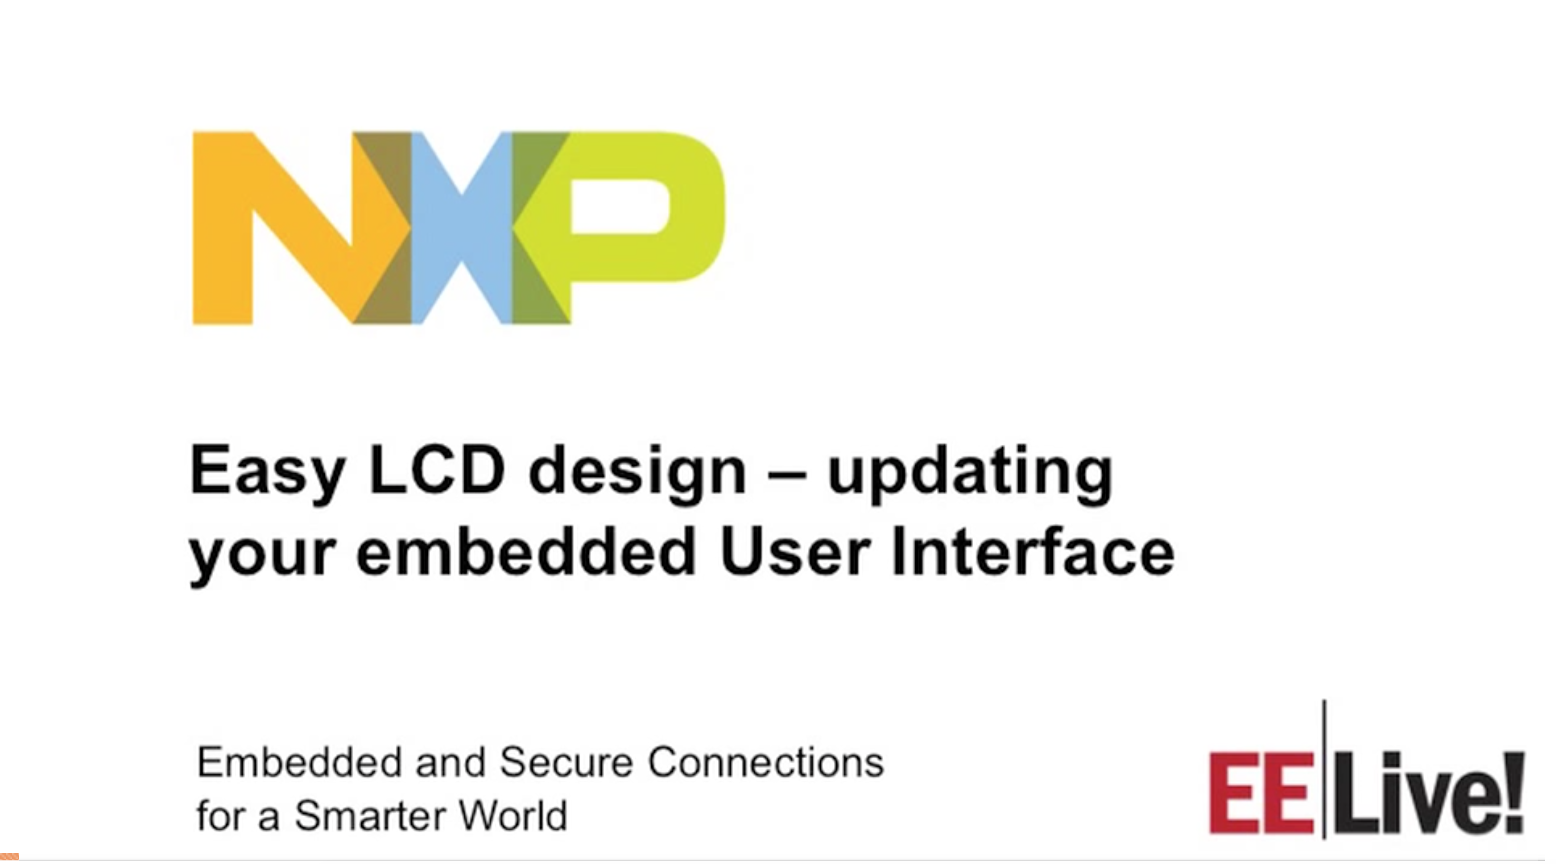 Easy LCD design -- updating your embedded User Interface